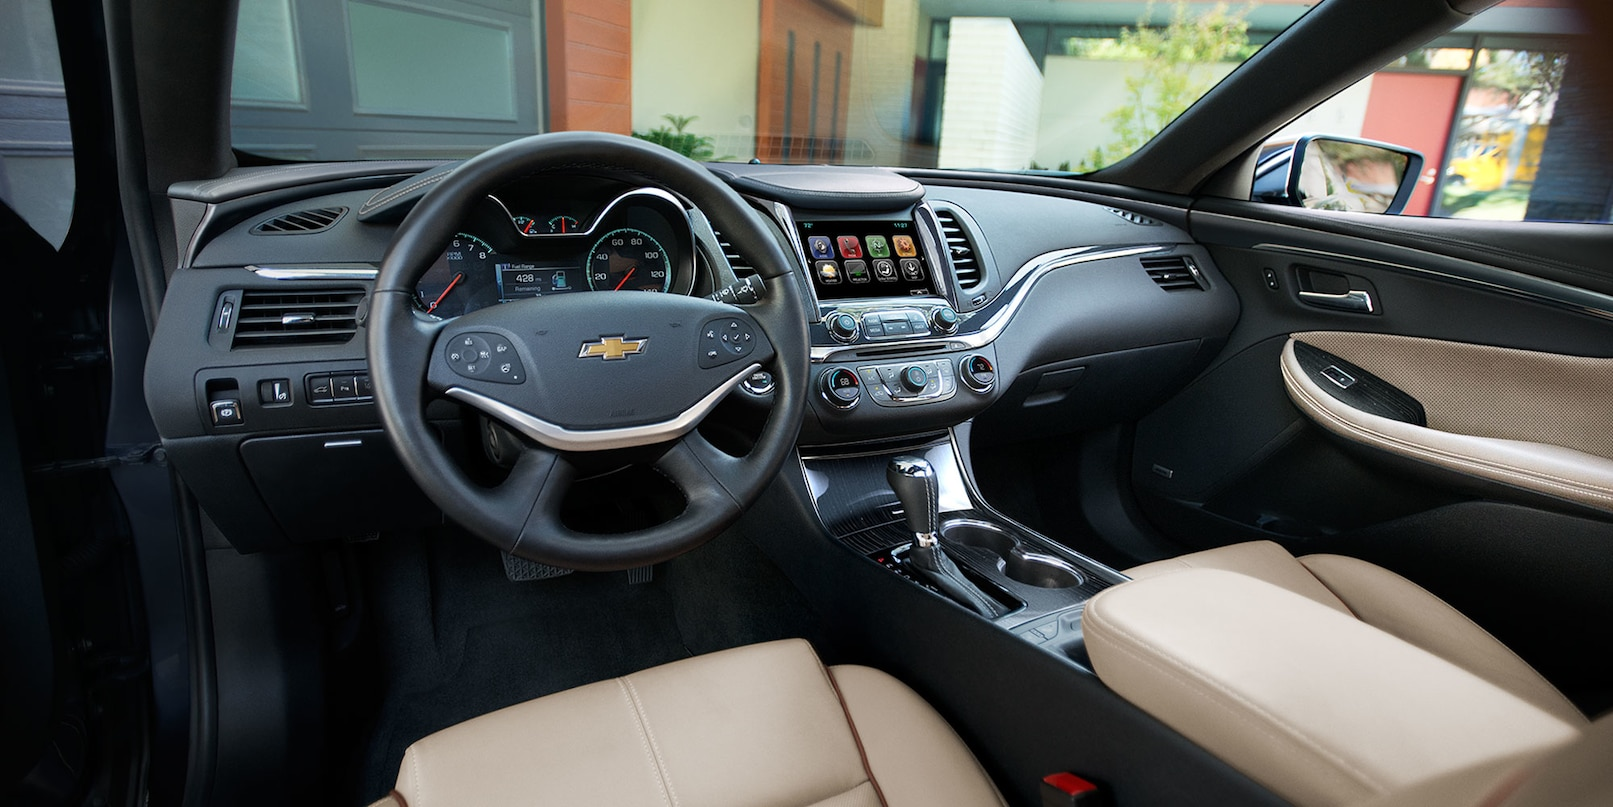 Interior of the 2018 Impala